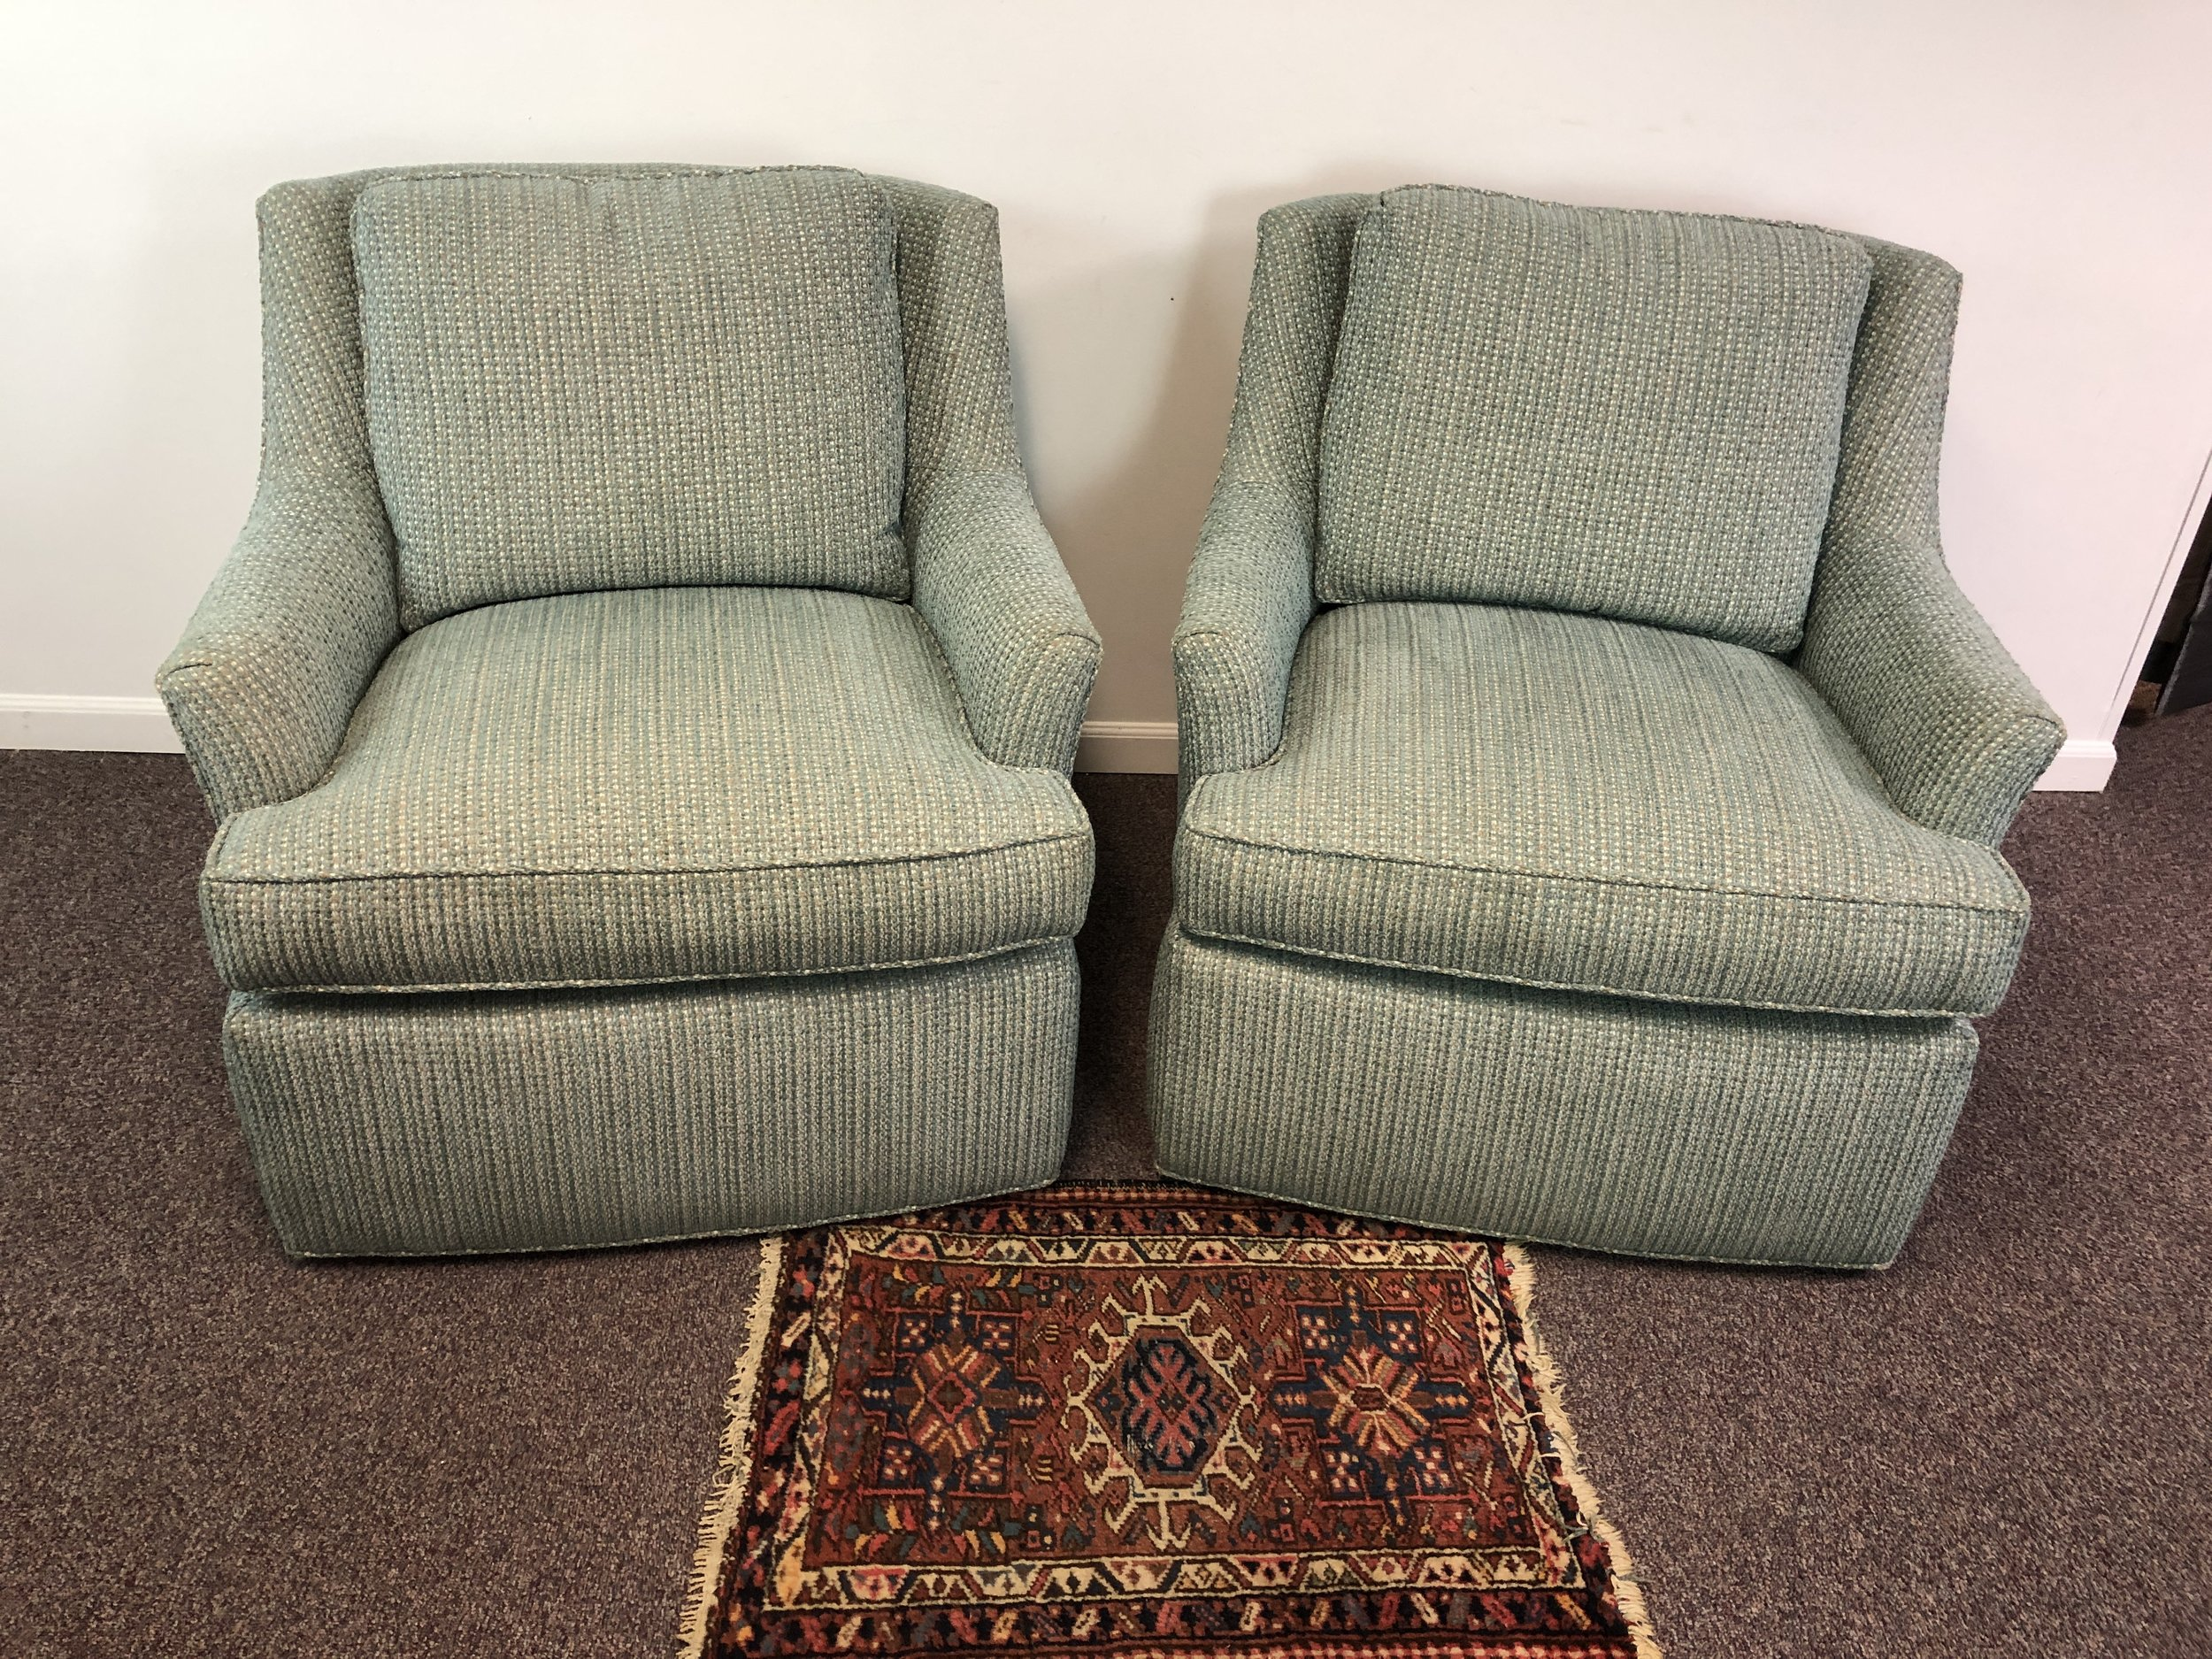 Pair Of Swivel Arm Chairs In Blue Tweed Upholstery By Pearson